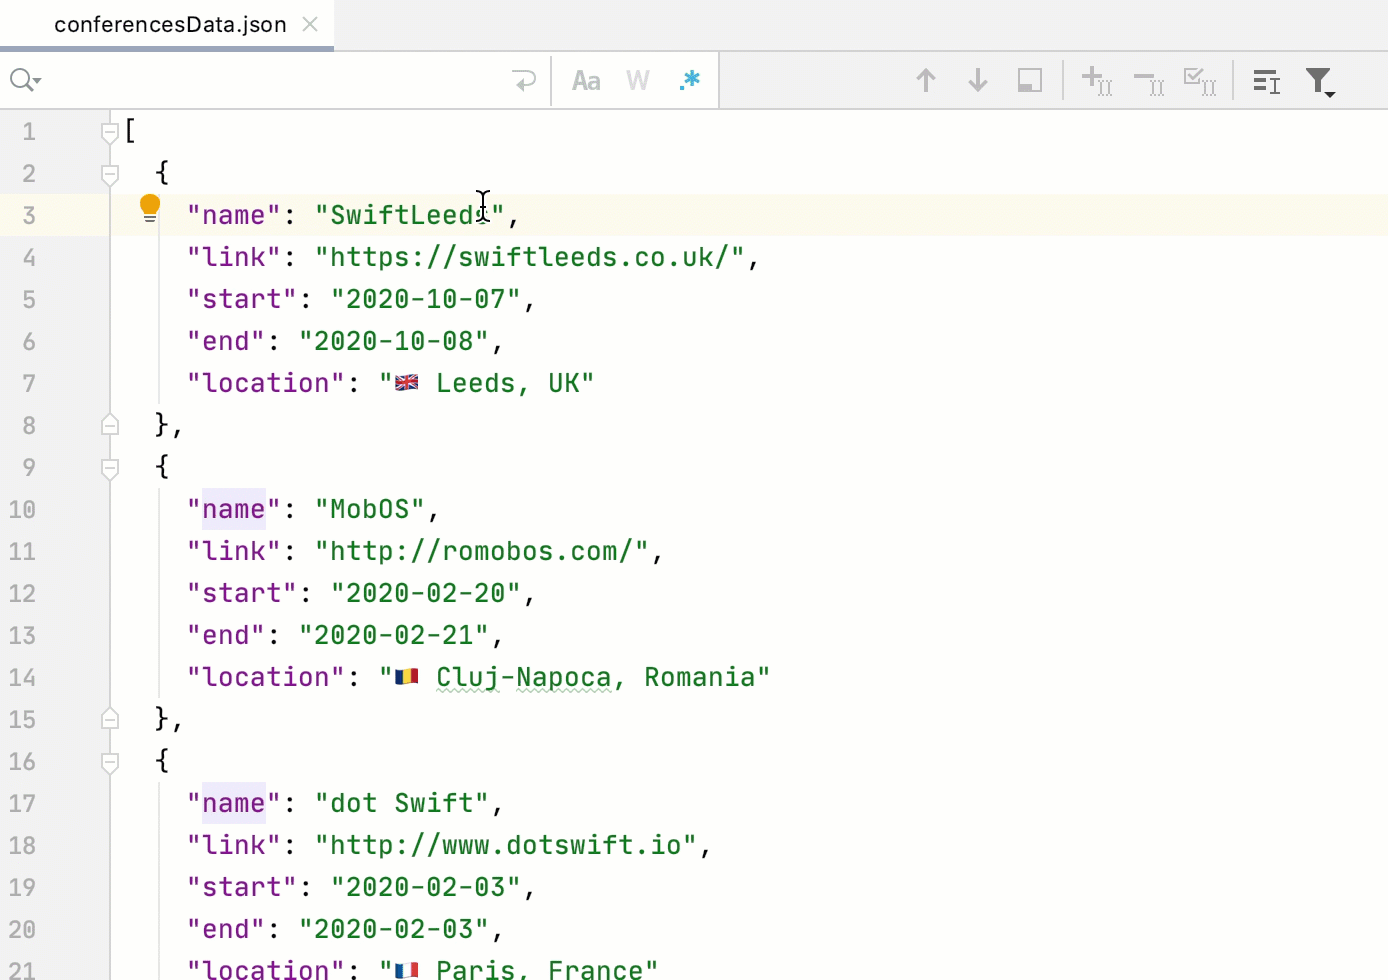 Escape regex special characters copied fromm the editor